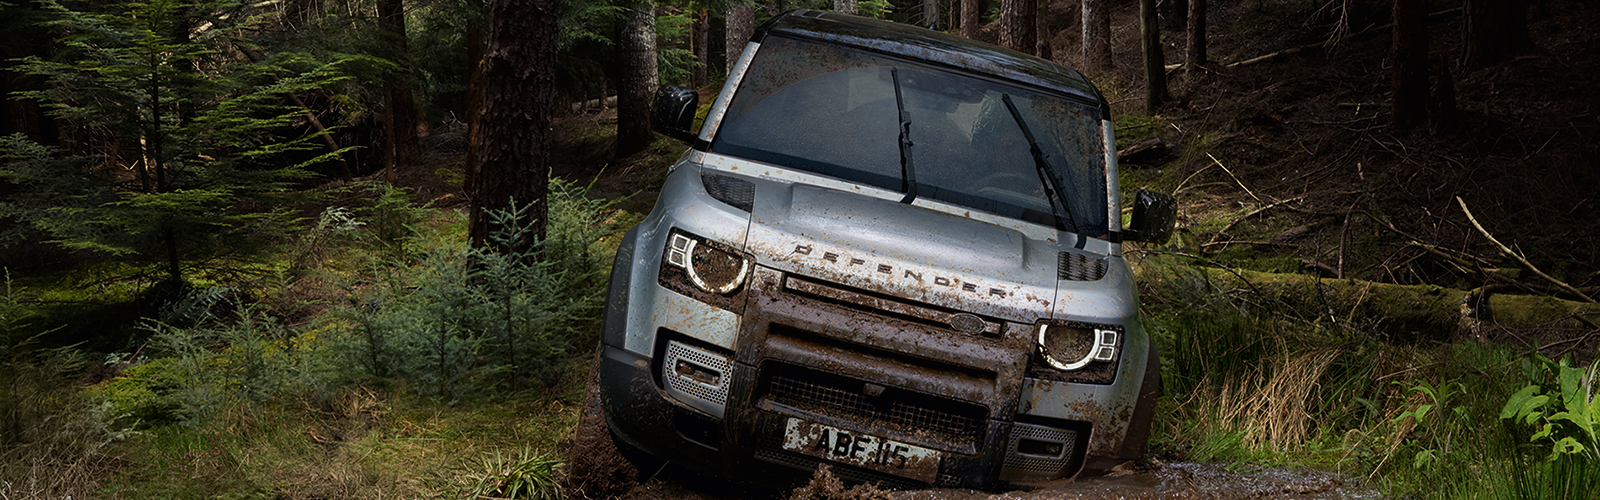 <br>A LAND ROVER OFF-ROAD DRIVING EXPERIENCE.